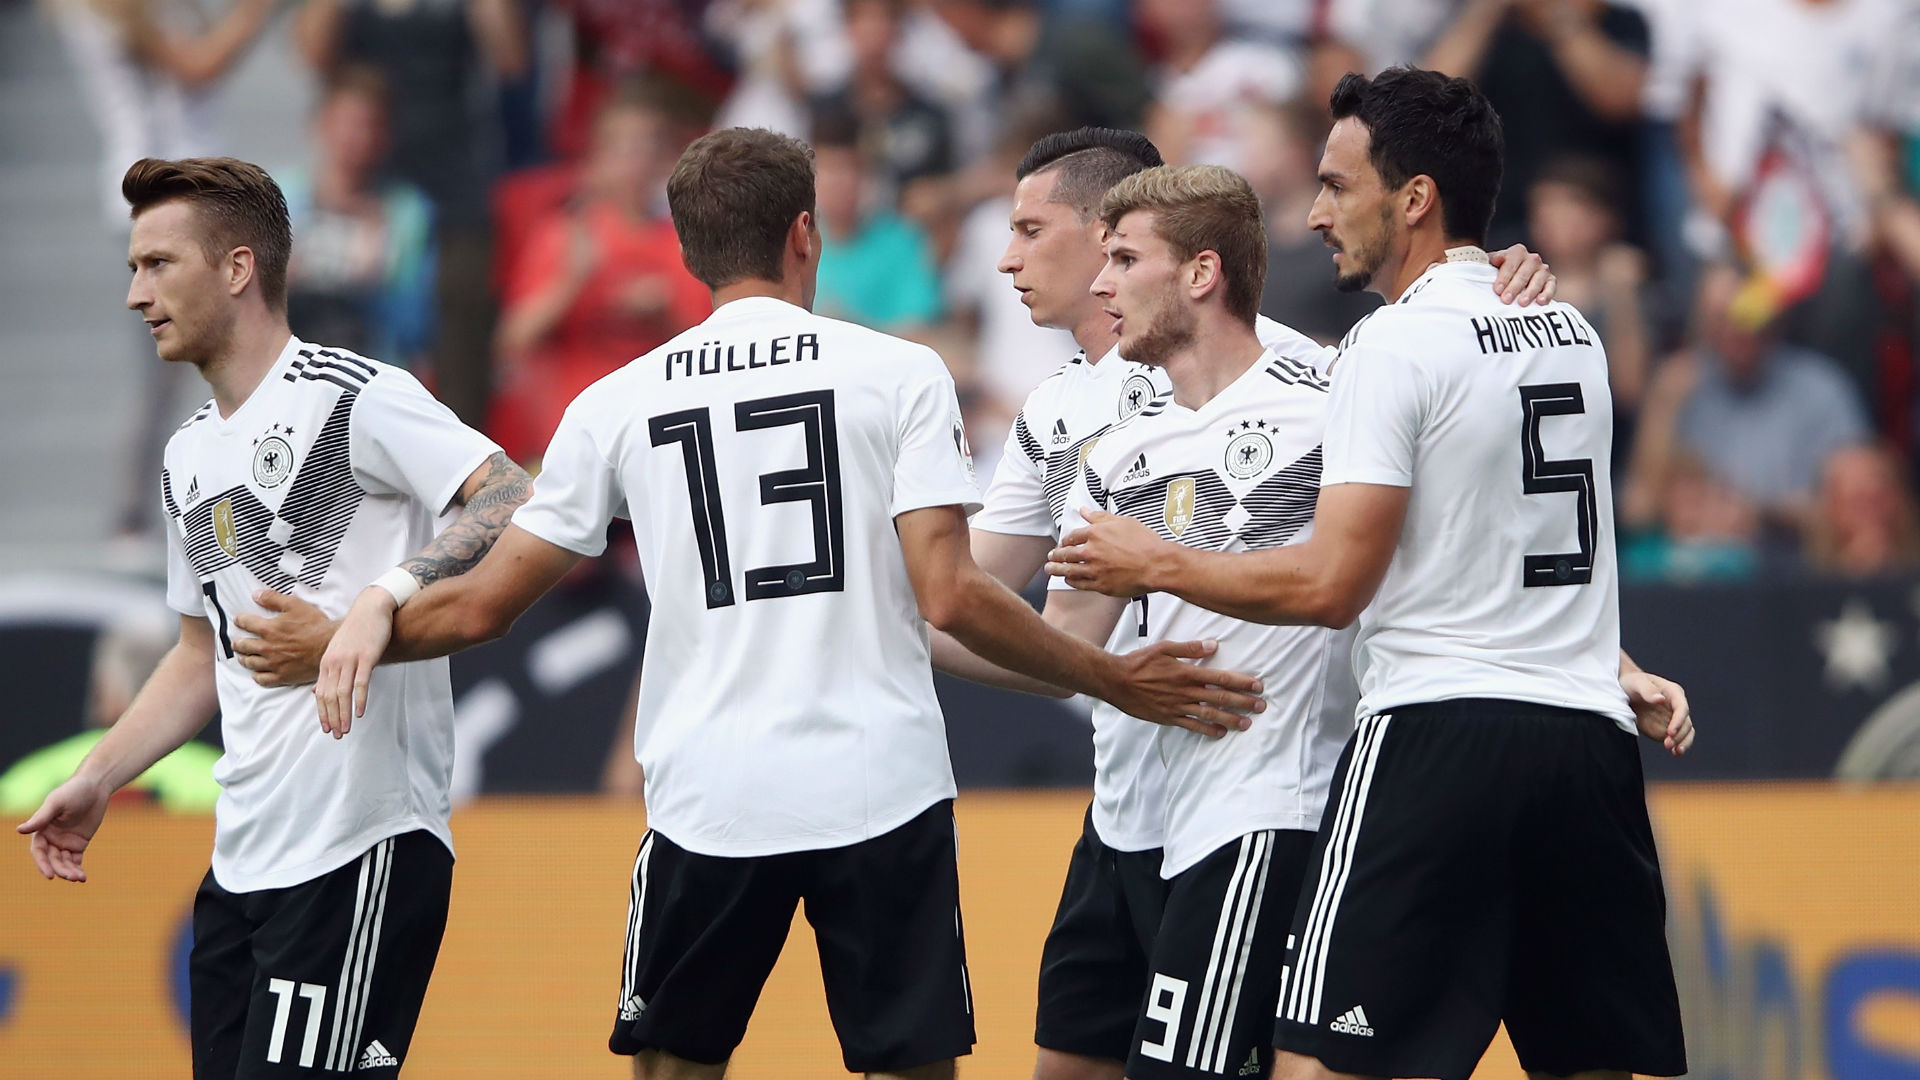 Werner shines as nervy Germany end winless streak